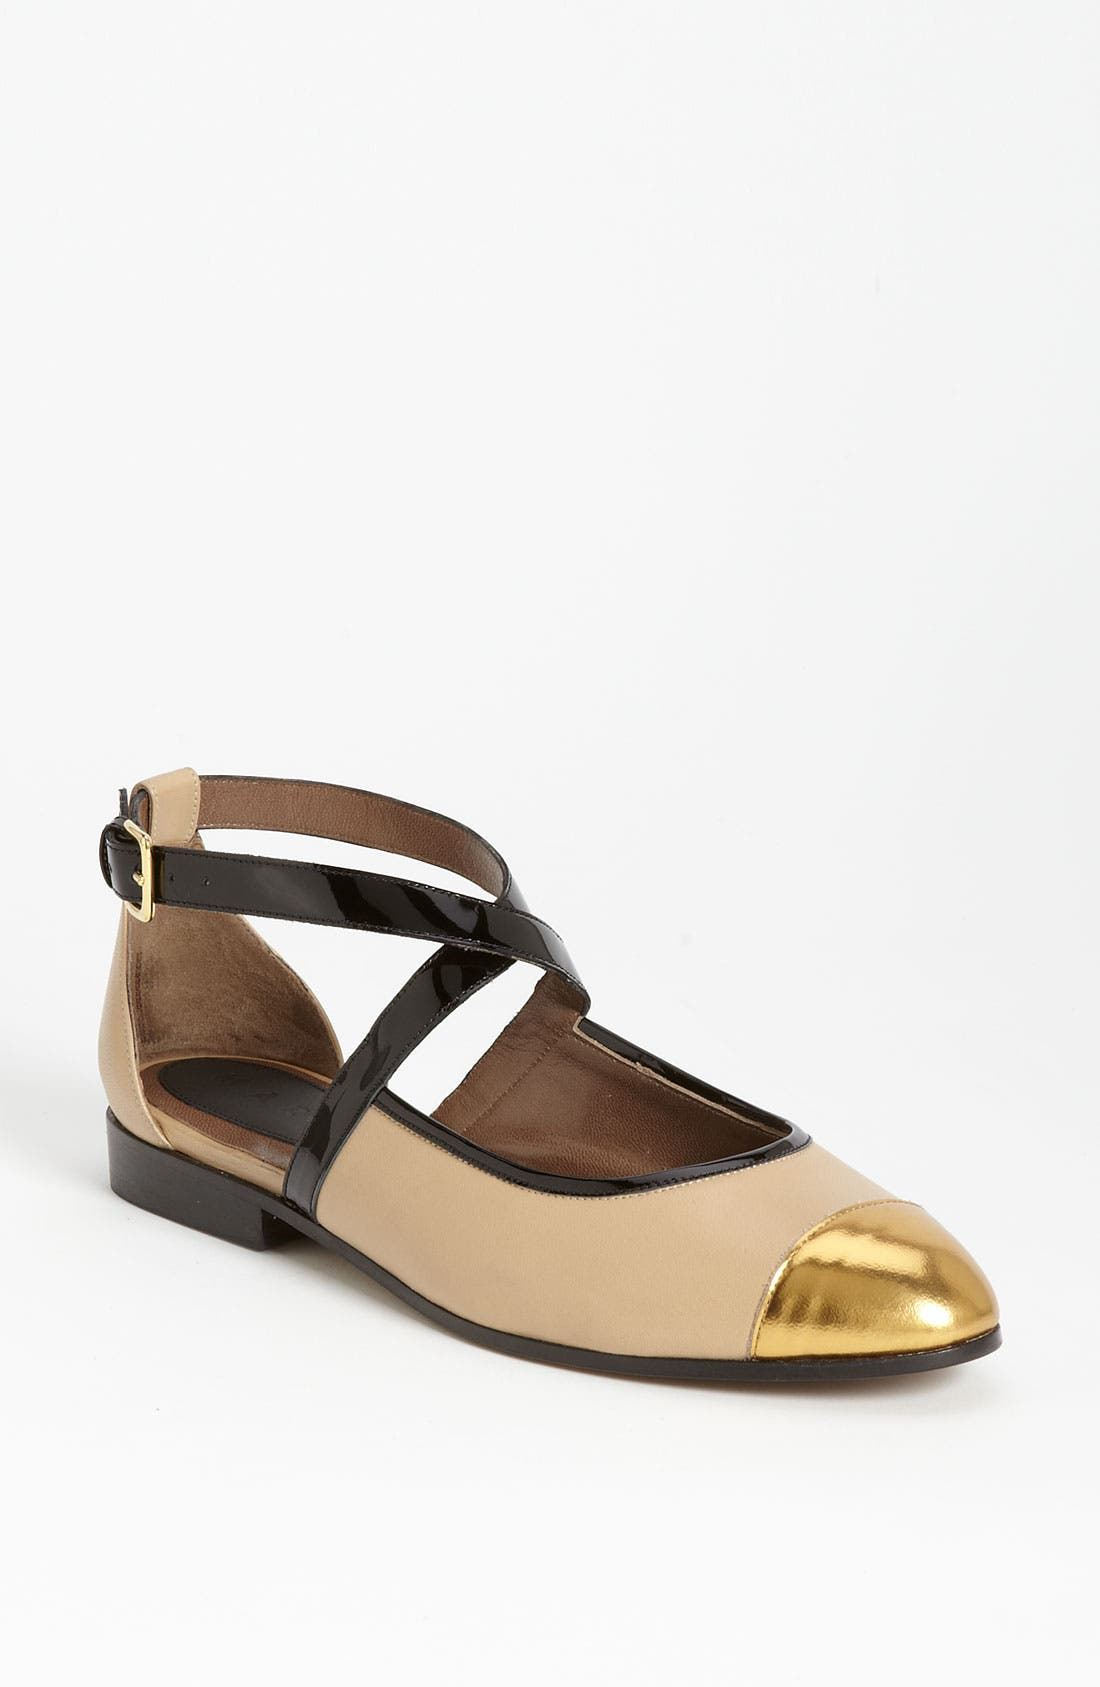 Alternate Image 1 Selected - Marni 'Criss Cross' Flat